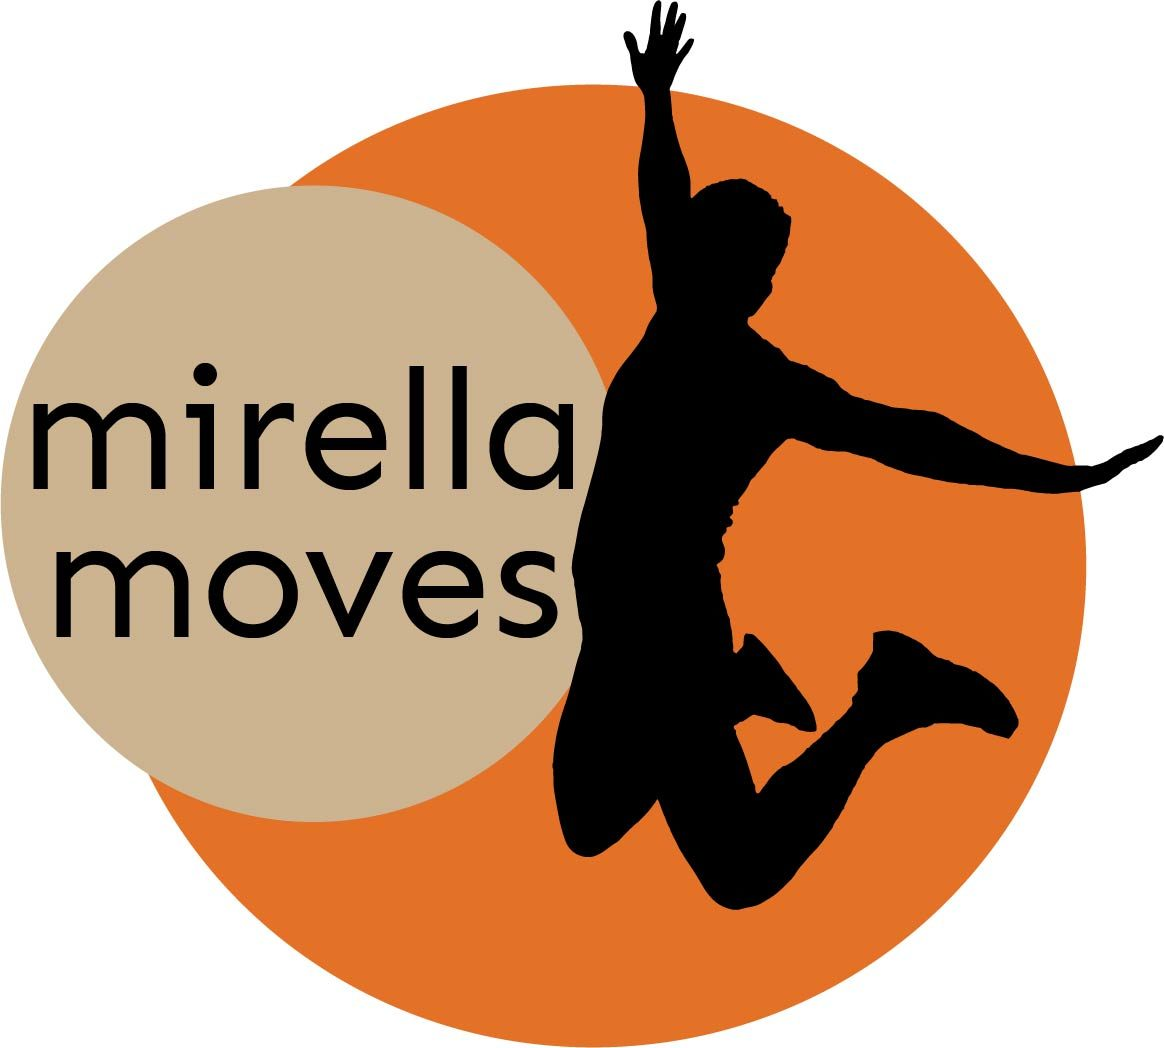 mirella moves